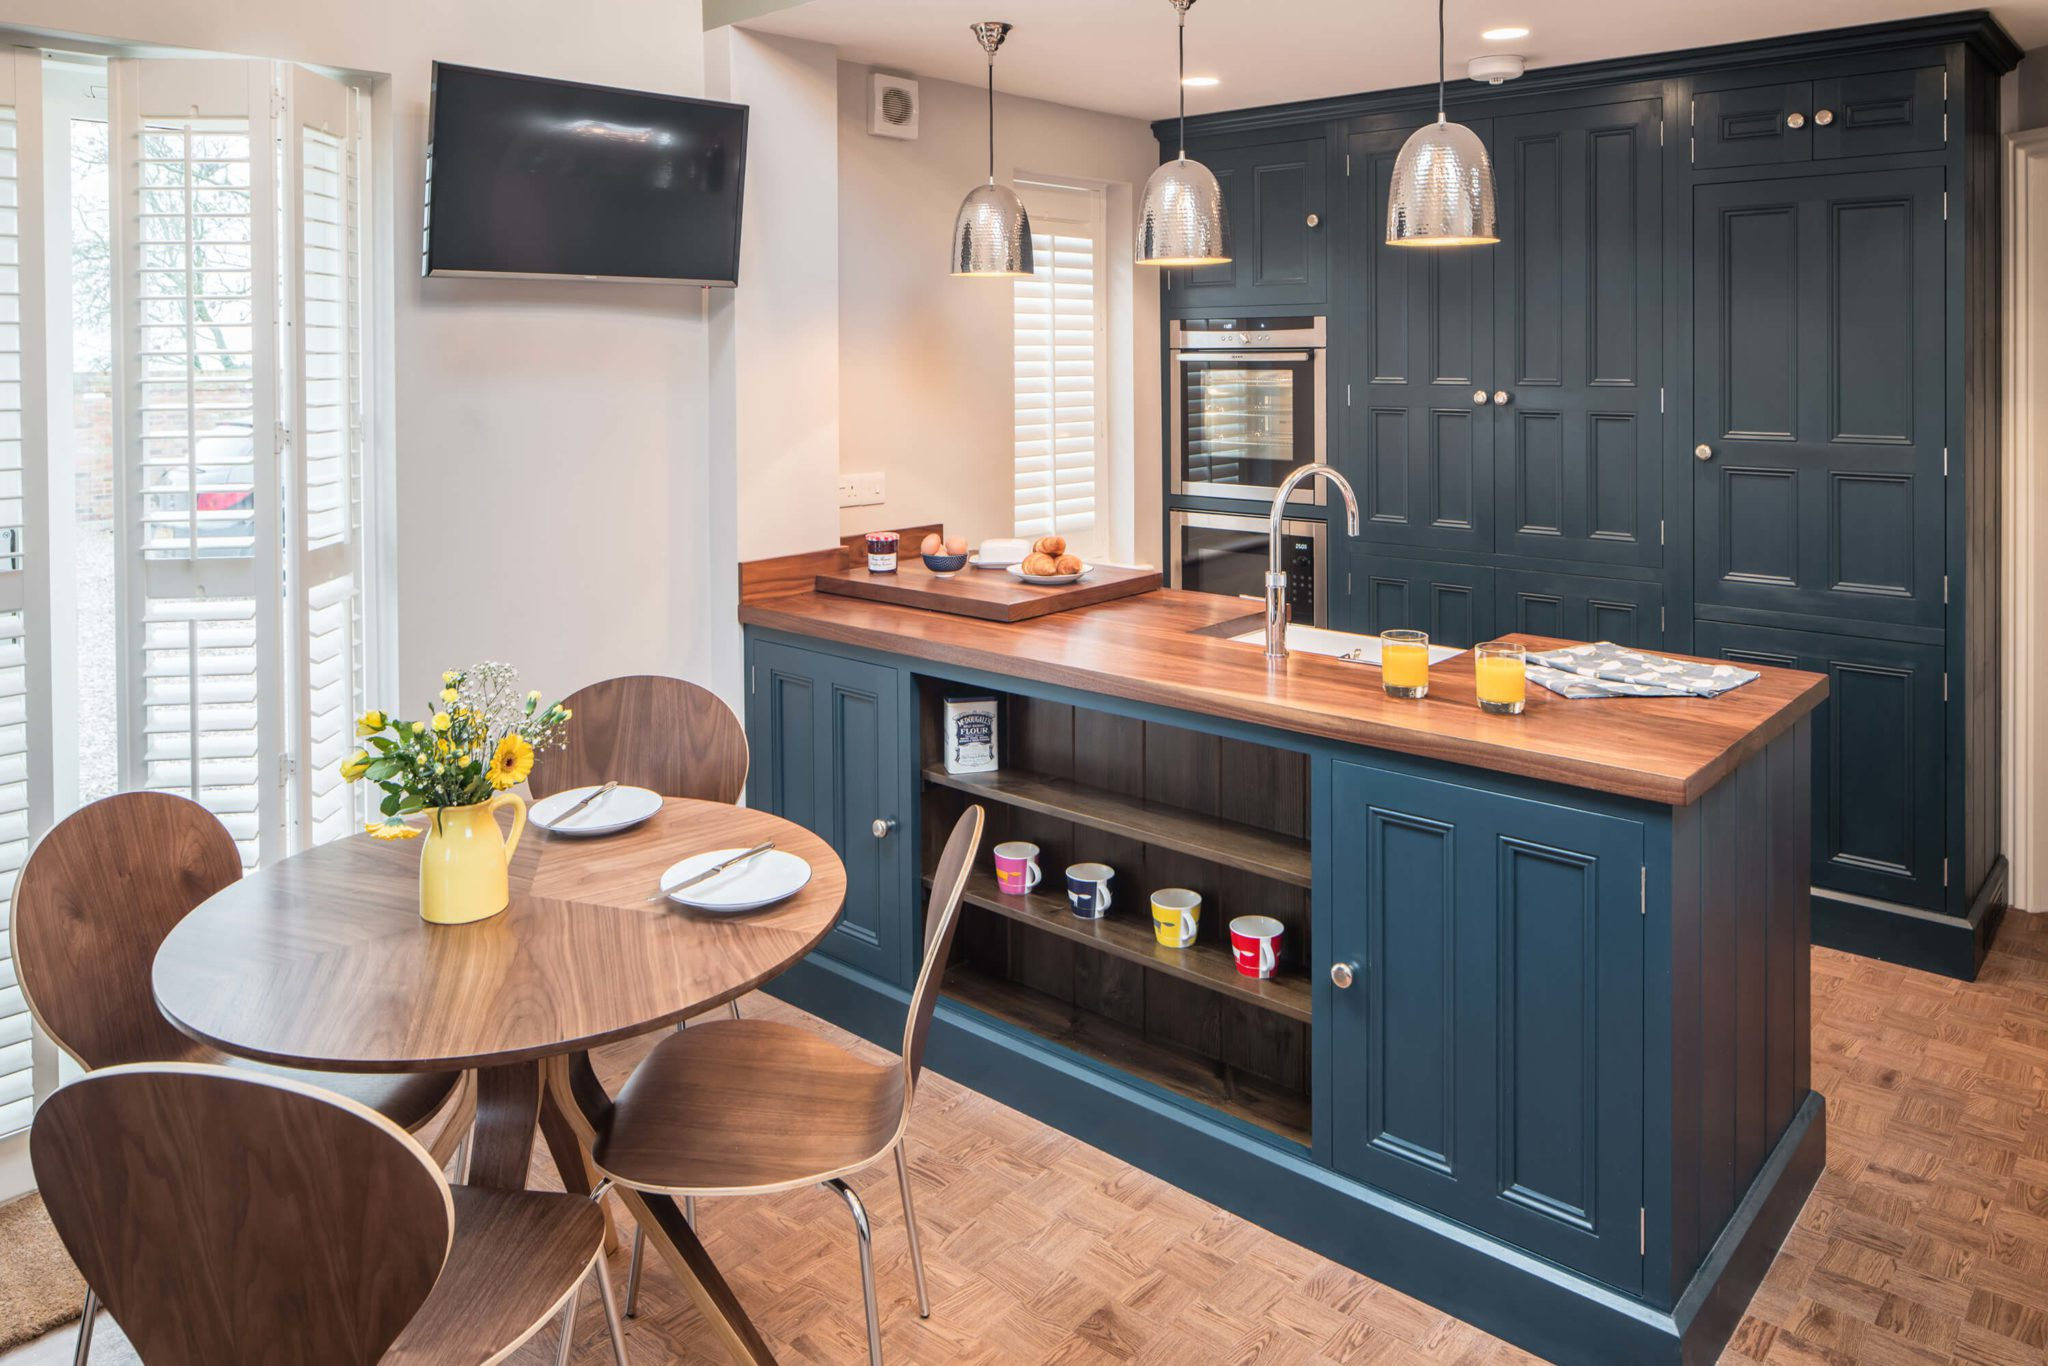 Kitchen Blue 11 - Hill Farm Furniture